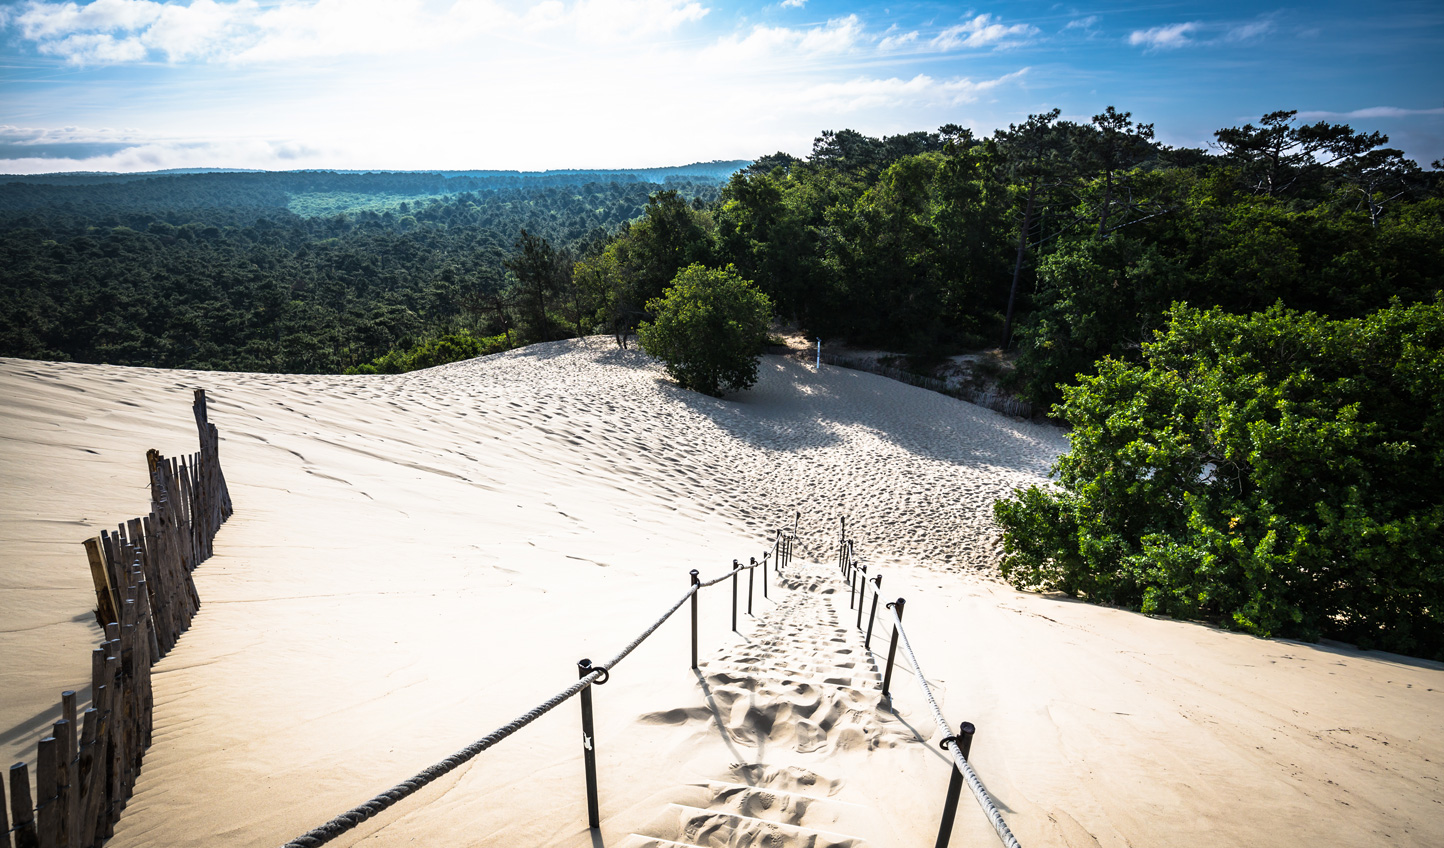 Head to Arcachon Bay to see the impressive sand dunes and try some oysters